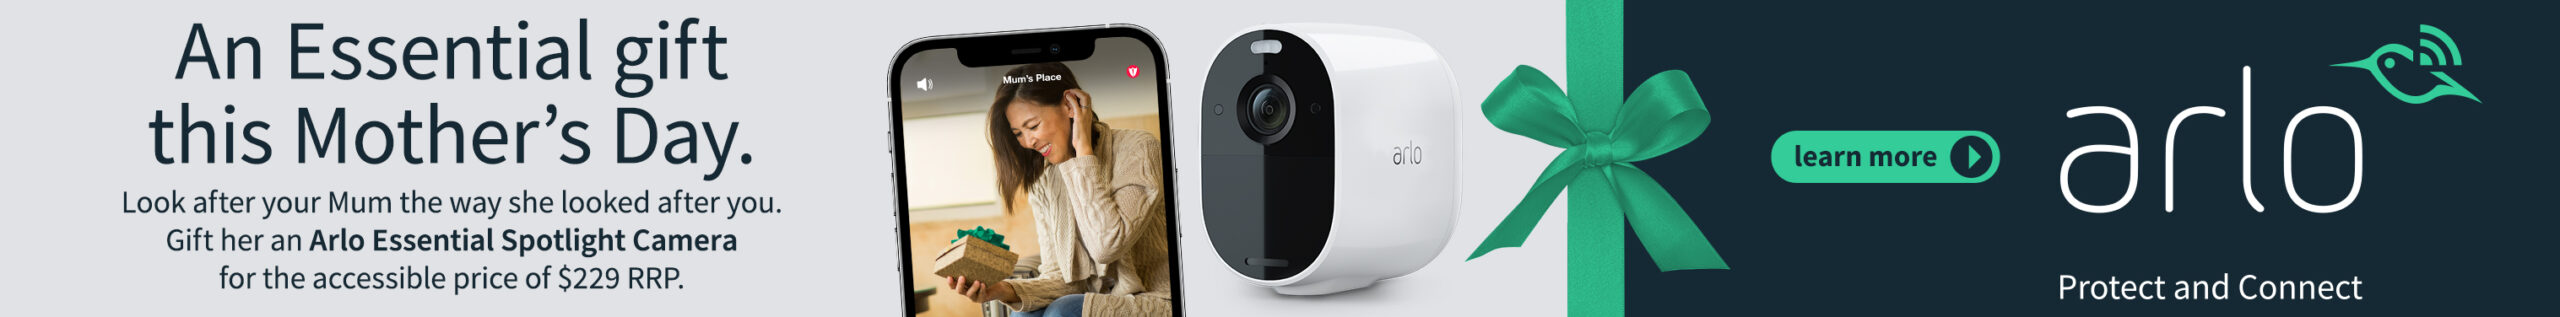 ARL0355 Arlo Essential Spotlight Mothers Day 2021 Banner 728x90 FA scaled CES 2018: Swann Debuts Two Way Video Doorbell & Voice Control Support